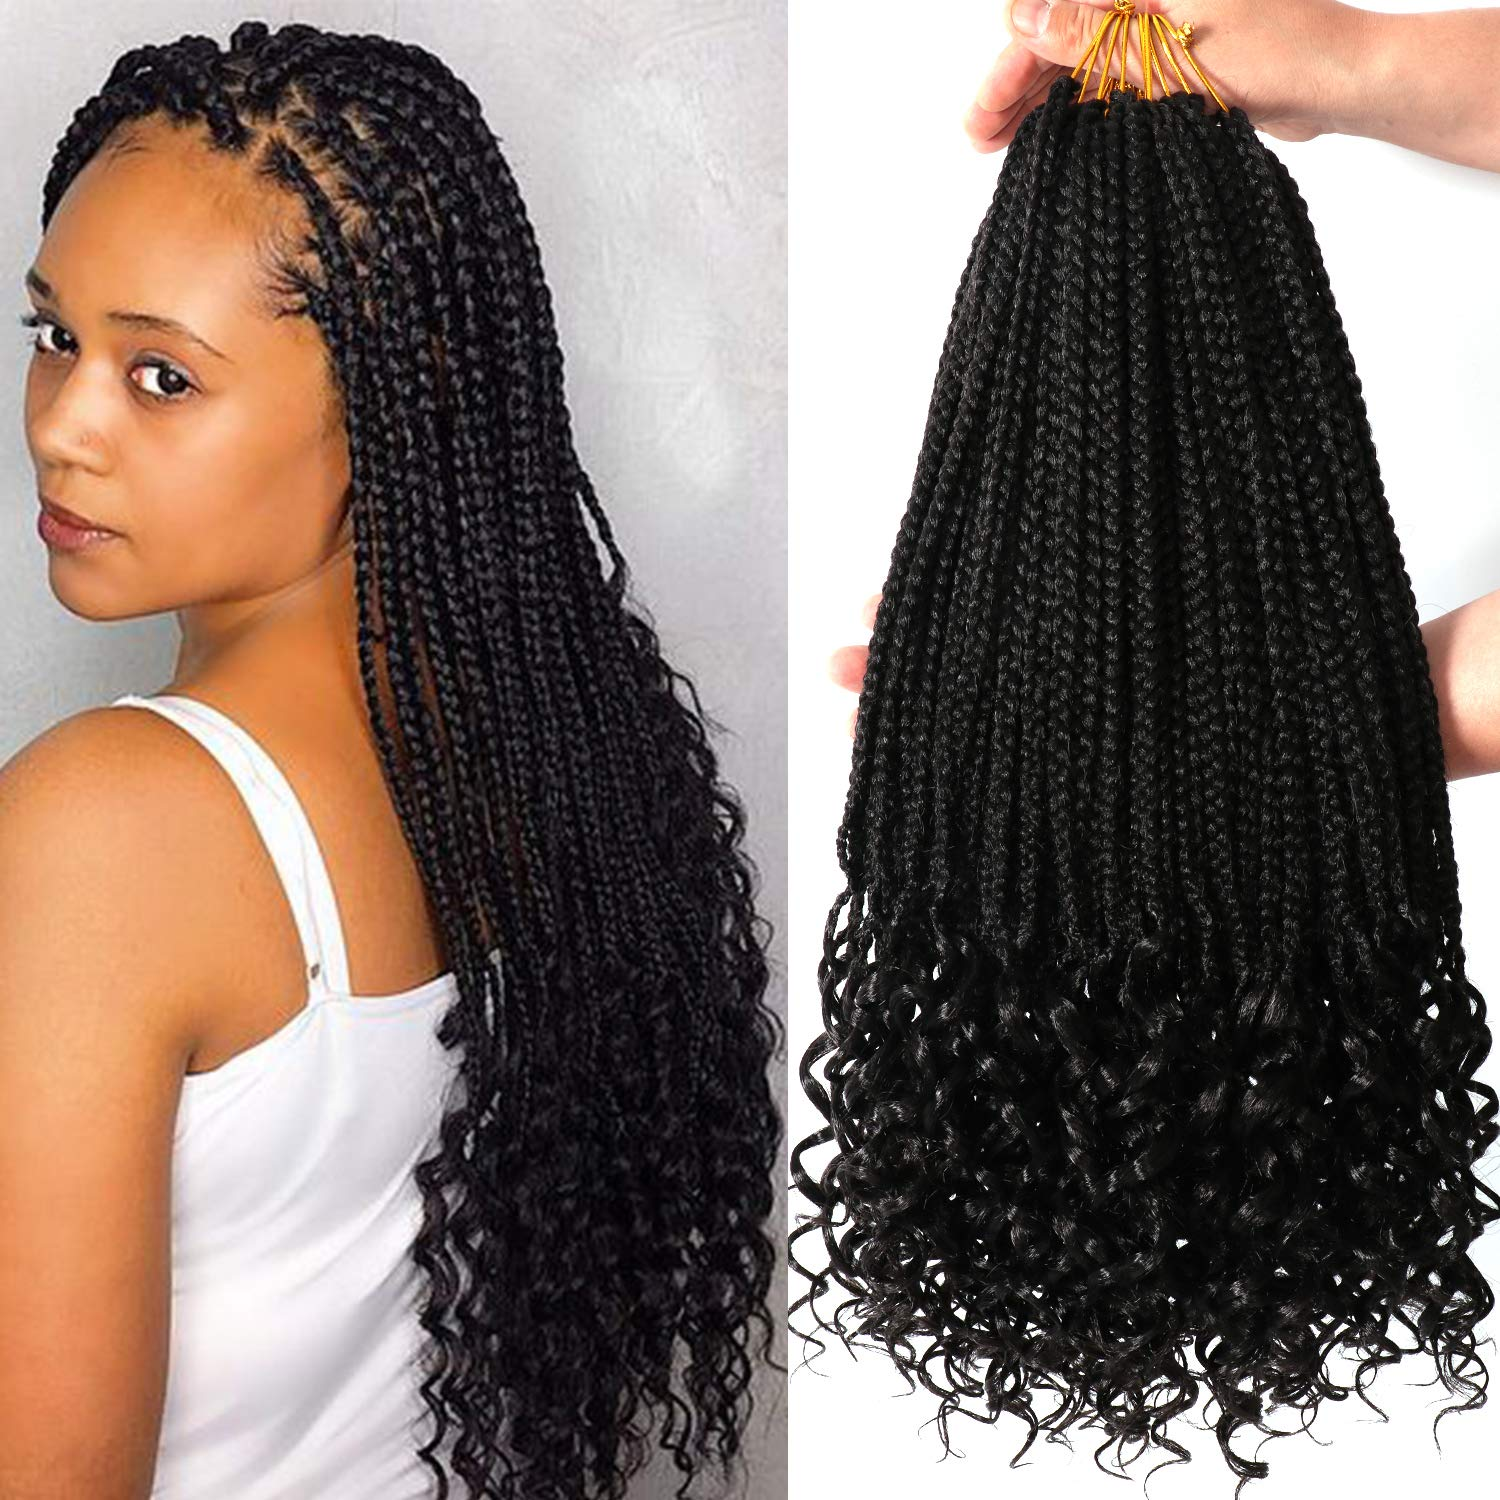 7 Packs 18 Inch Box Braids Crochet Braids with Curly Ends 3X Box Braid  Crochet Hair Extension 20 Strands/Pack (18 Inch, 1B)